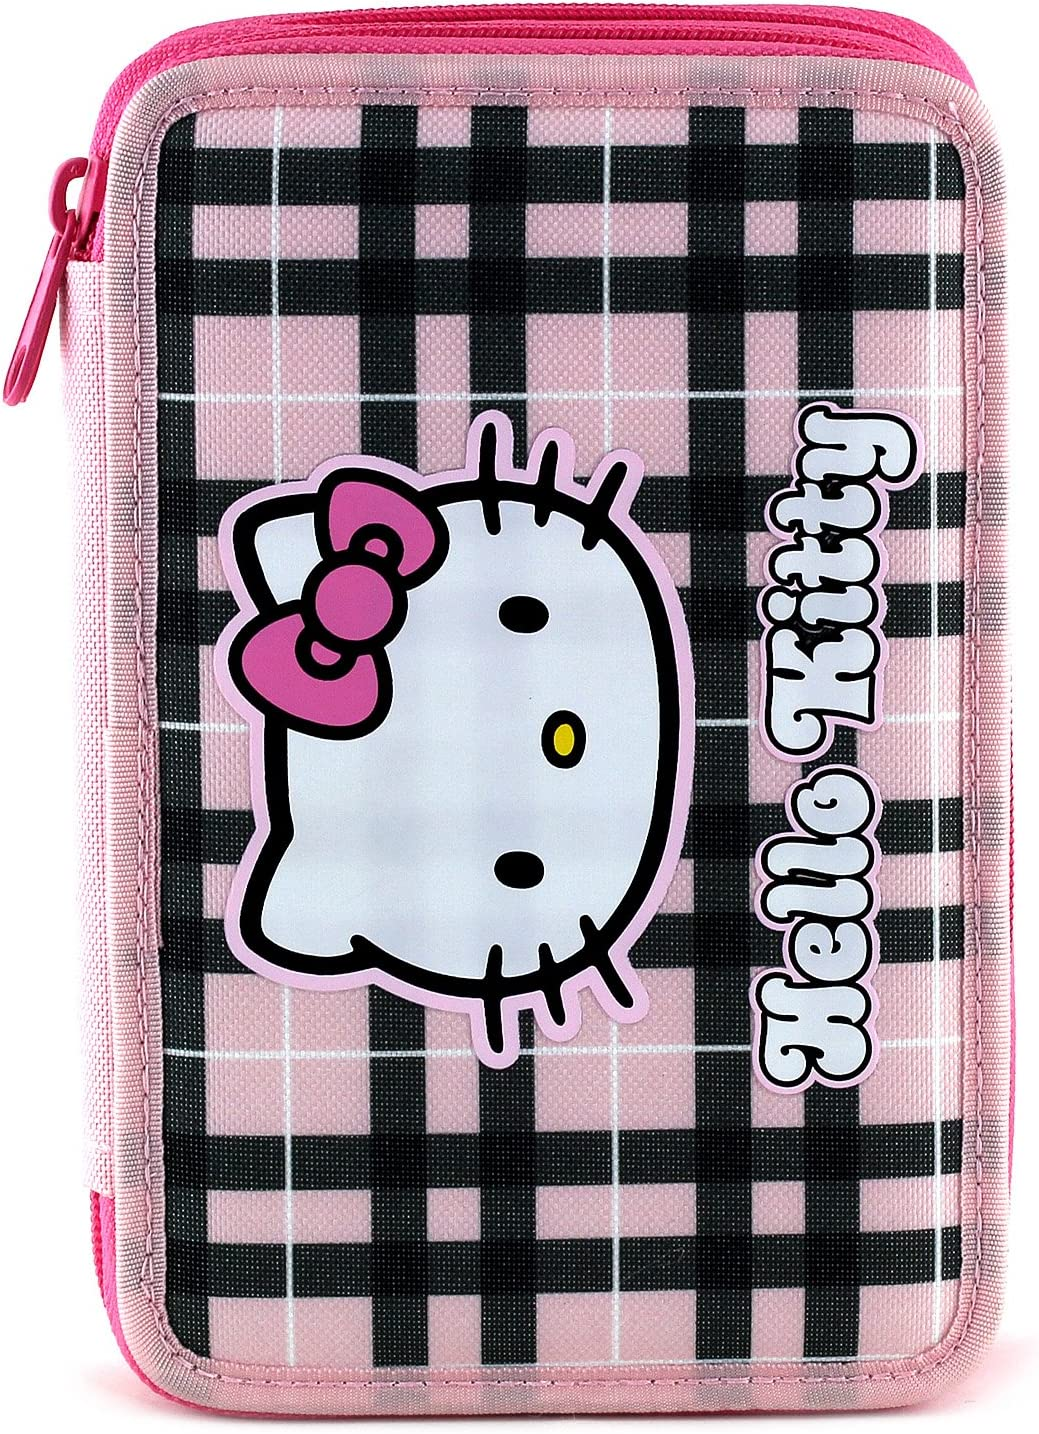 Hello Kitty 23890 - Estuche Doble Completo para Escuela: Amazon.es: Equipaje